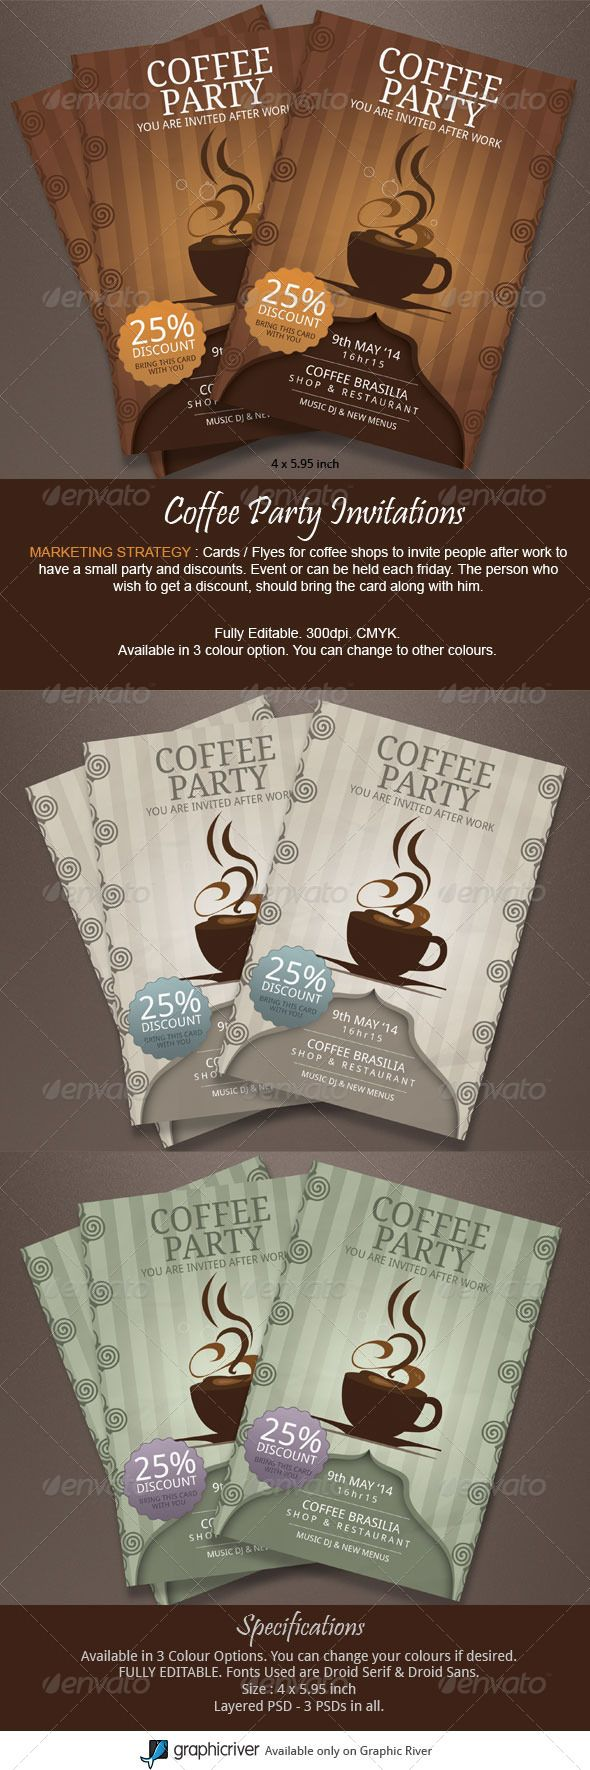 Coffee Party Invitations